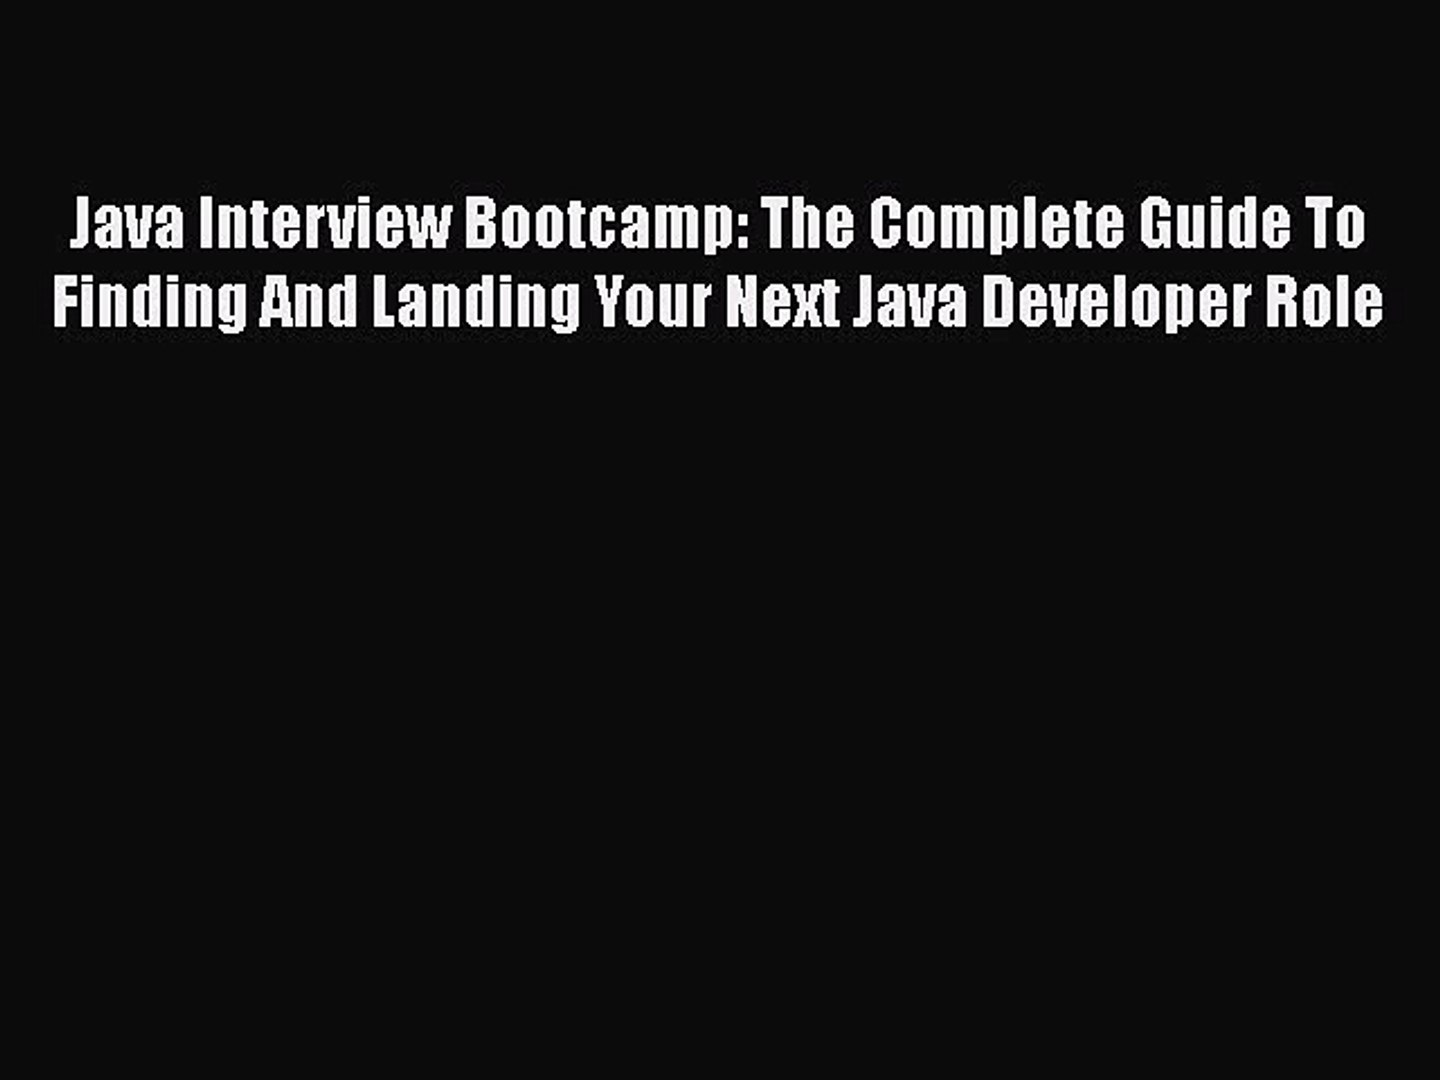 [Read book] Java Interview Bootcamp: The Complete Guide To Finding And Landing Your Next Java